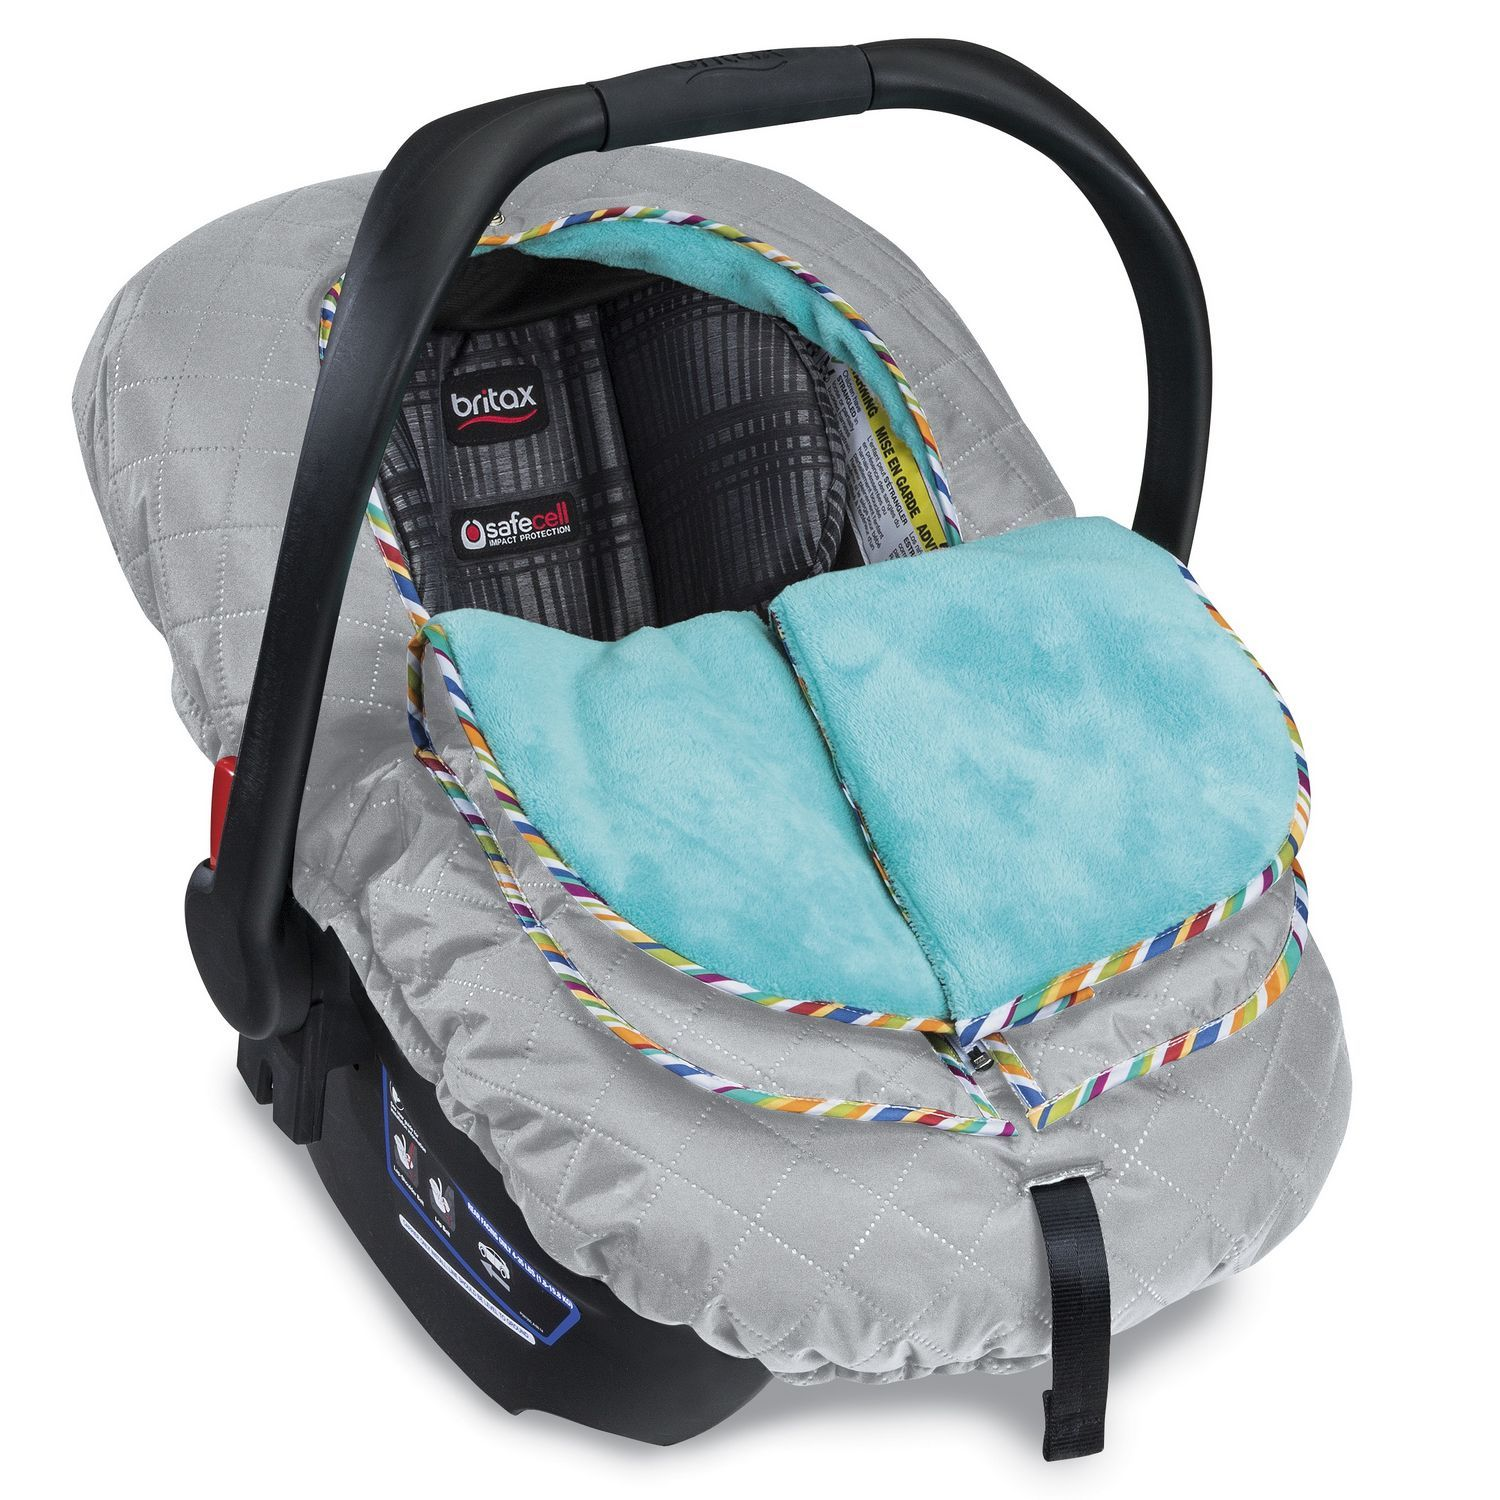 Britax B Warm Insulated Infant Car Seat Cover